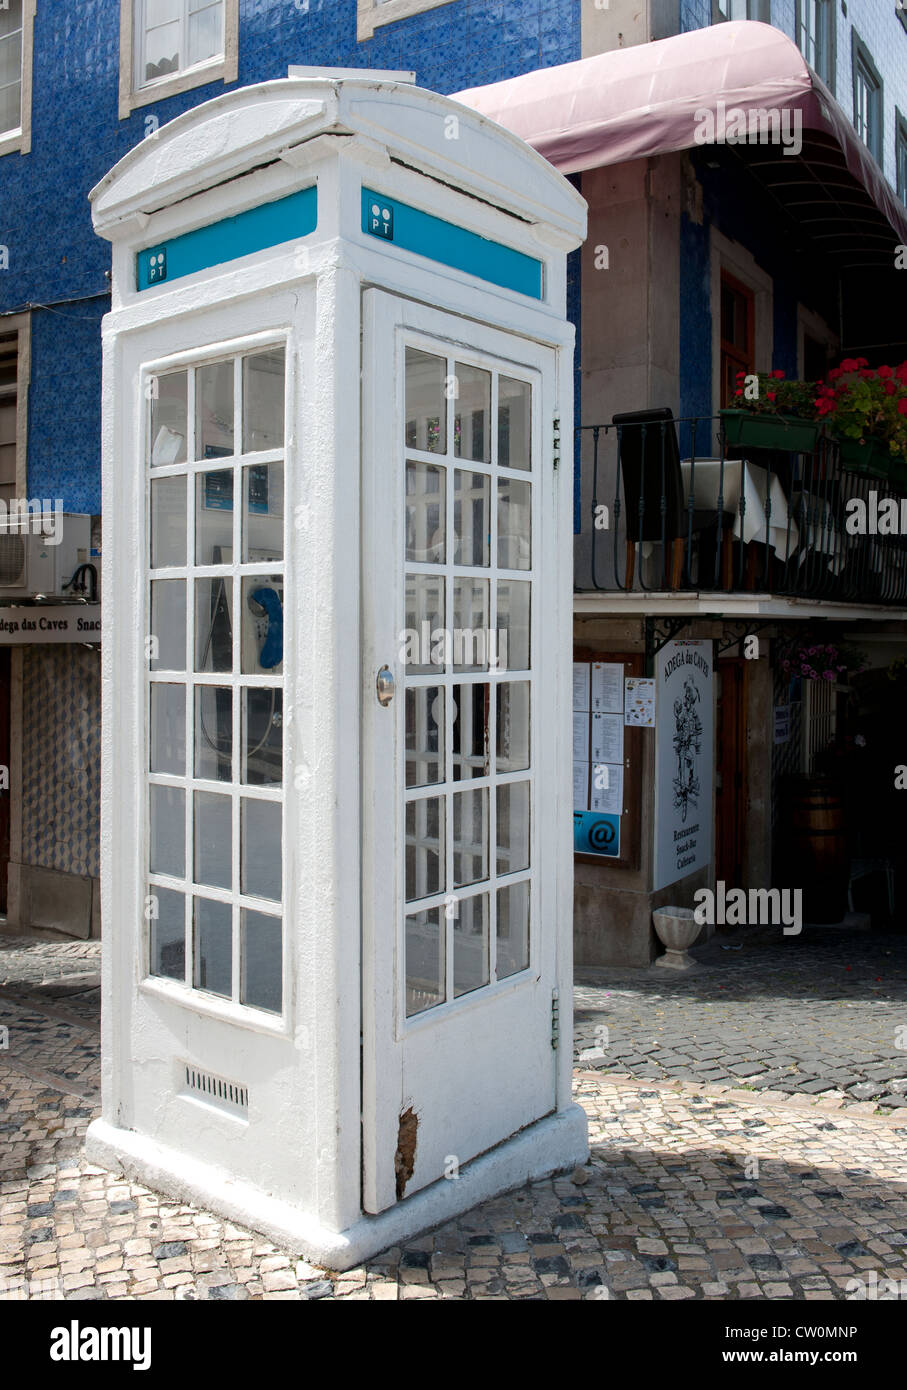 Public telephone kiosk (box) in town centre at Sintra, Portugal. - Stock Image